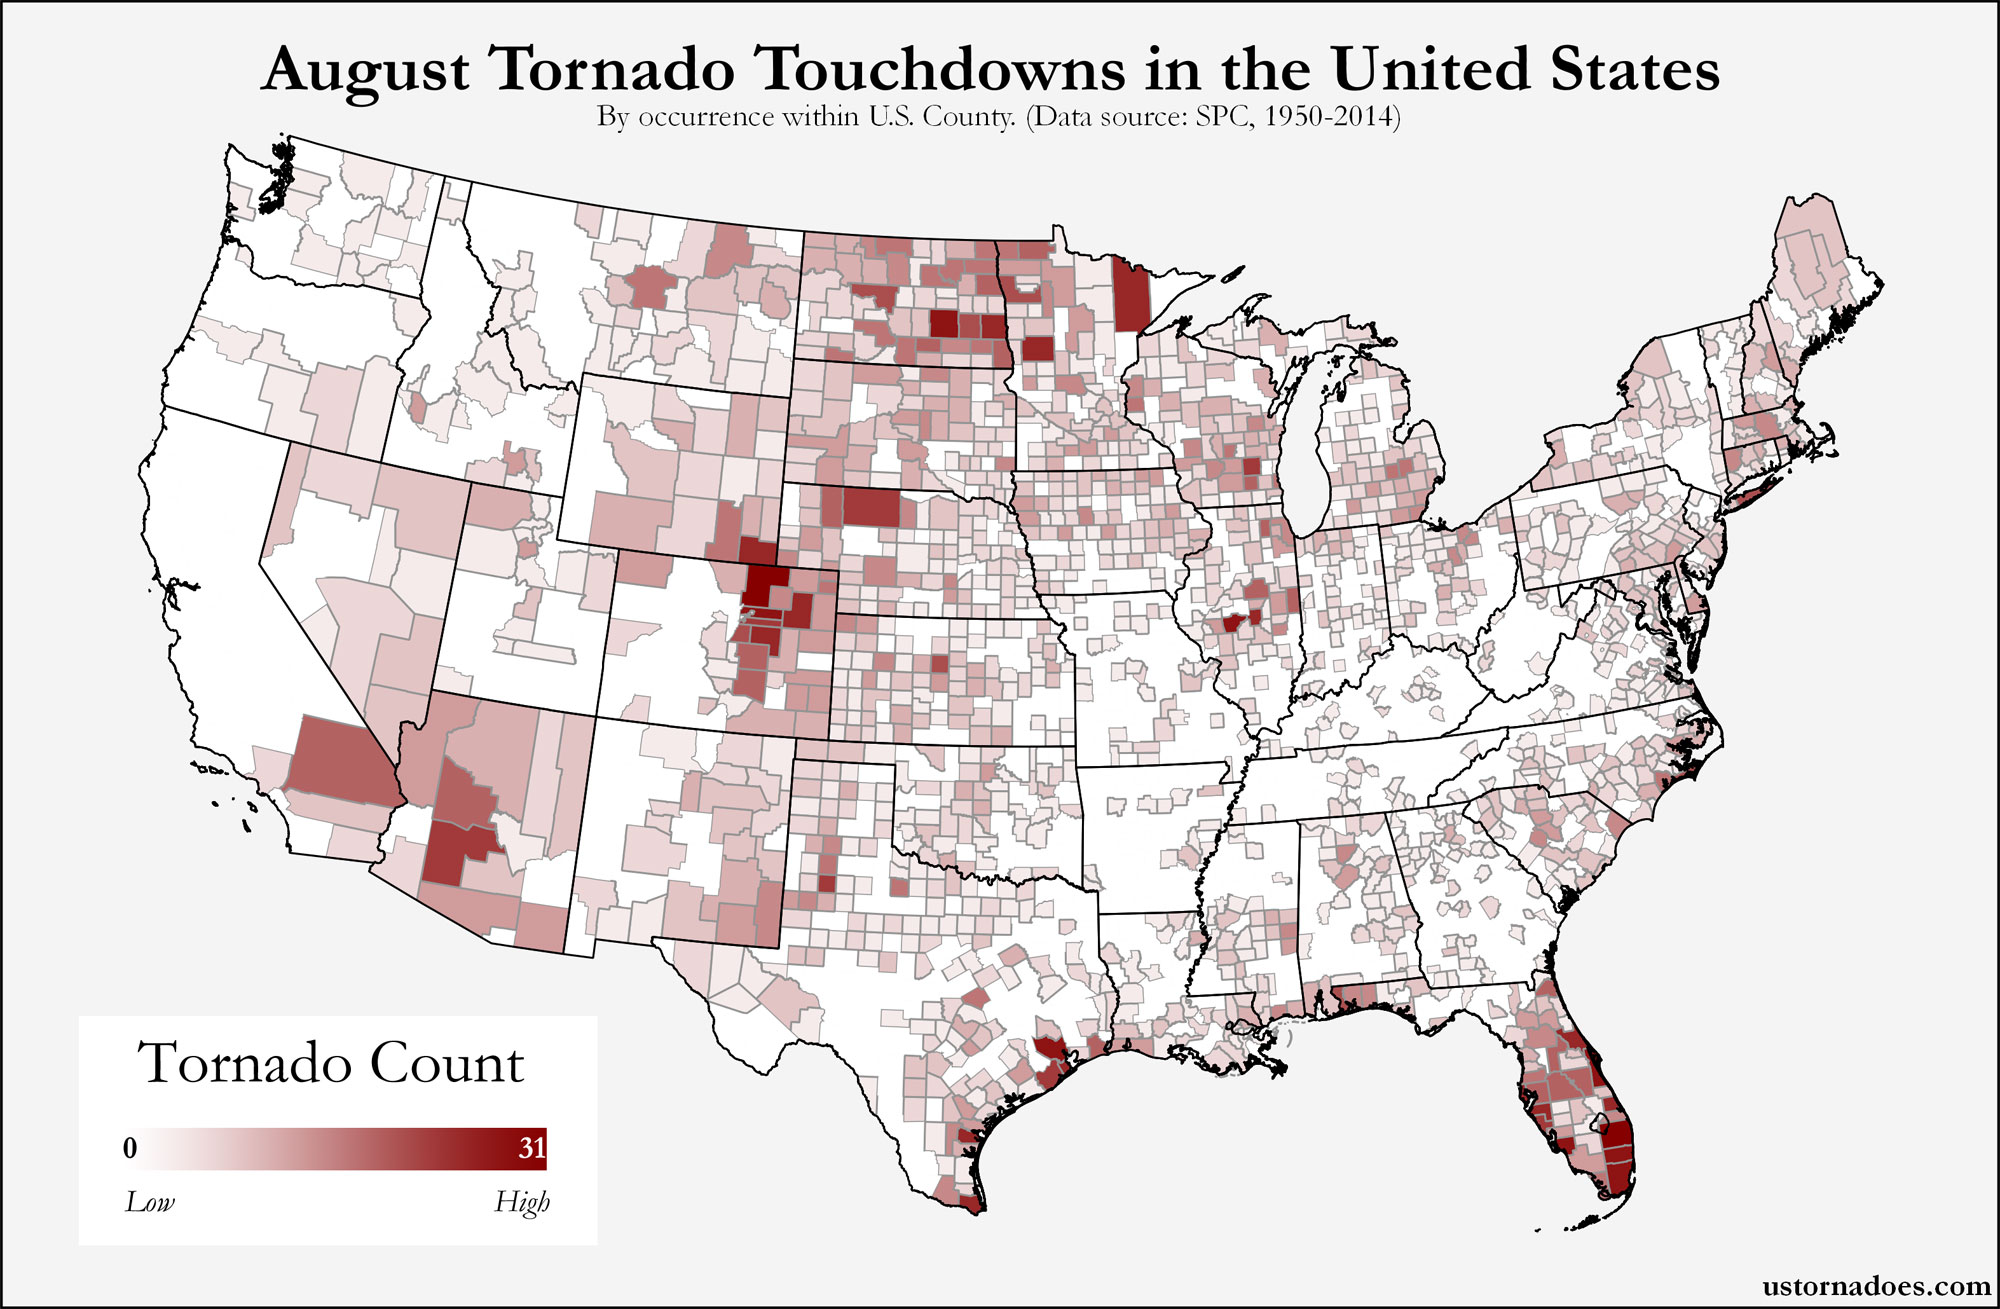 august-tornado-touchdown-conus-county